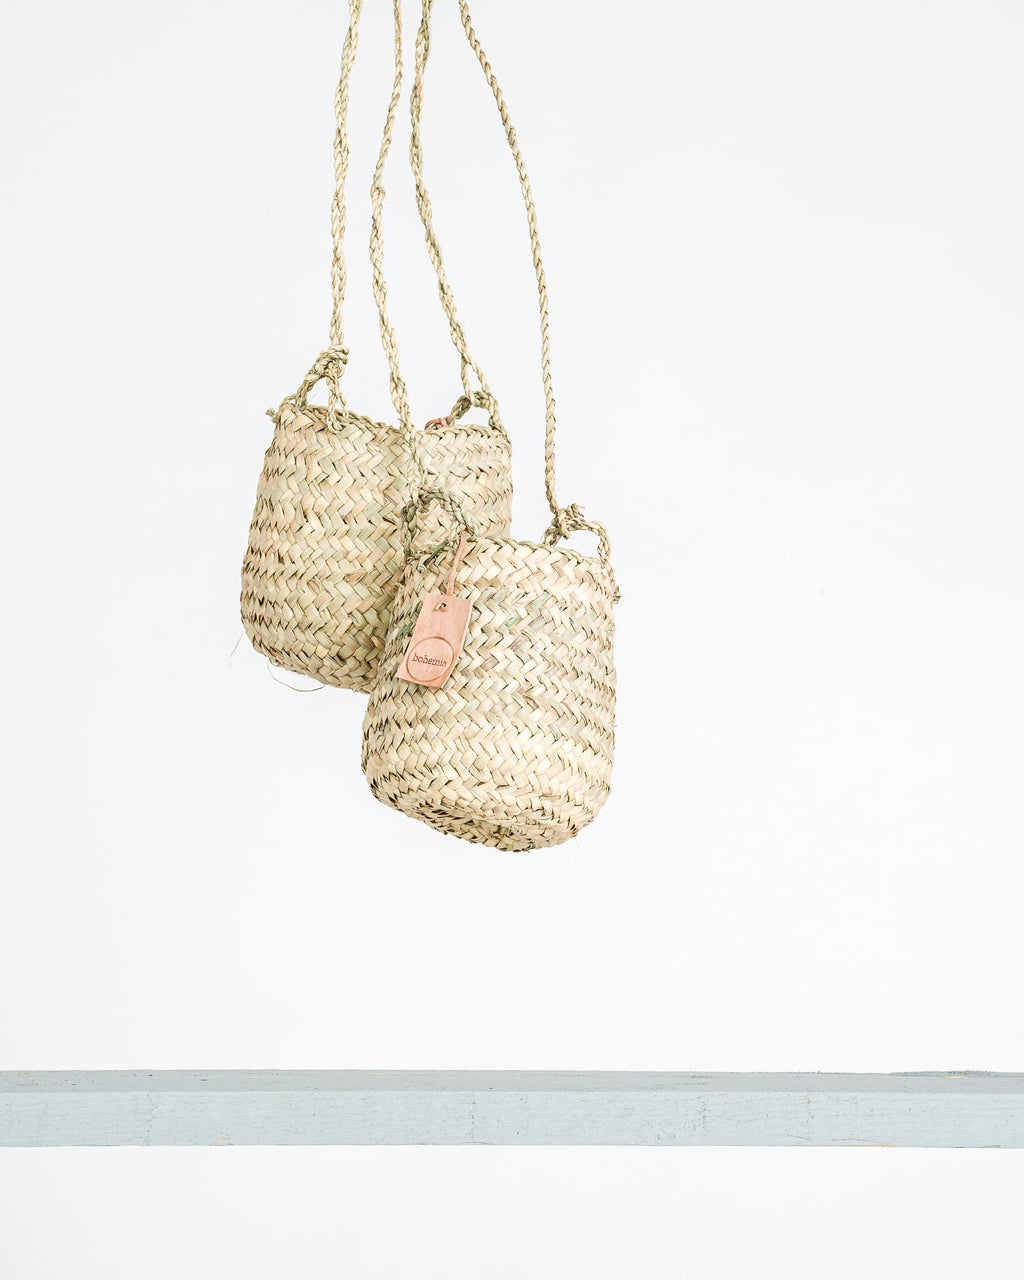 Bohemia Design  // Hanging Beldi Basket mini